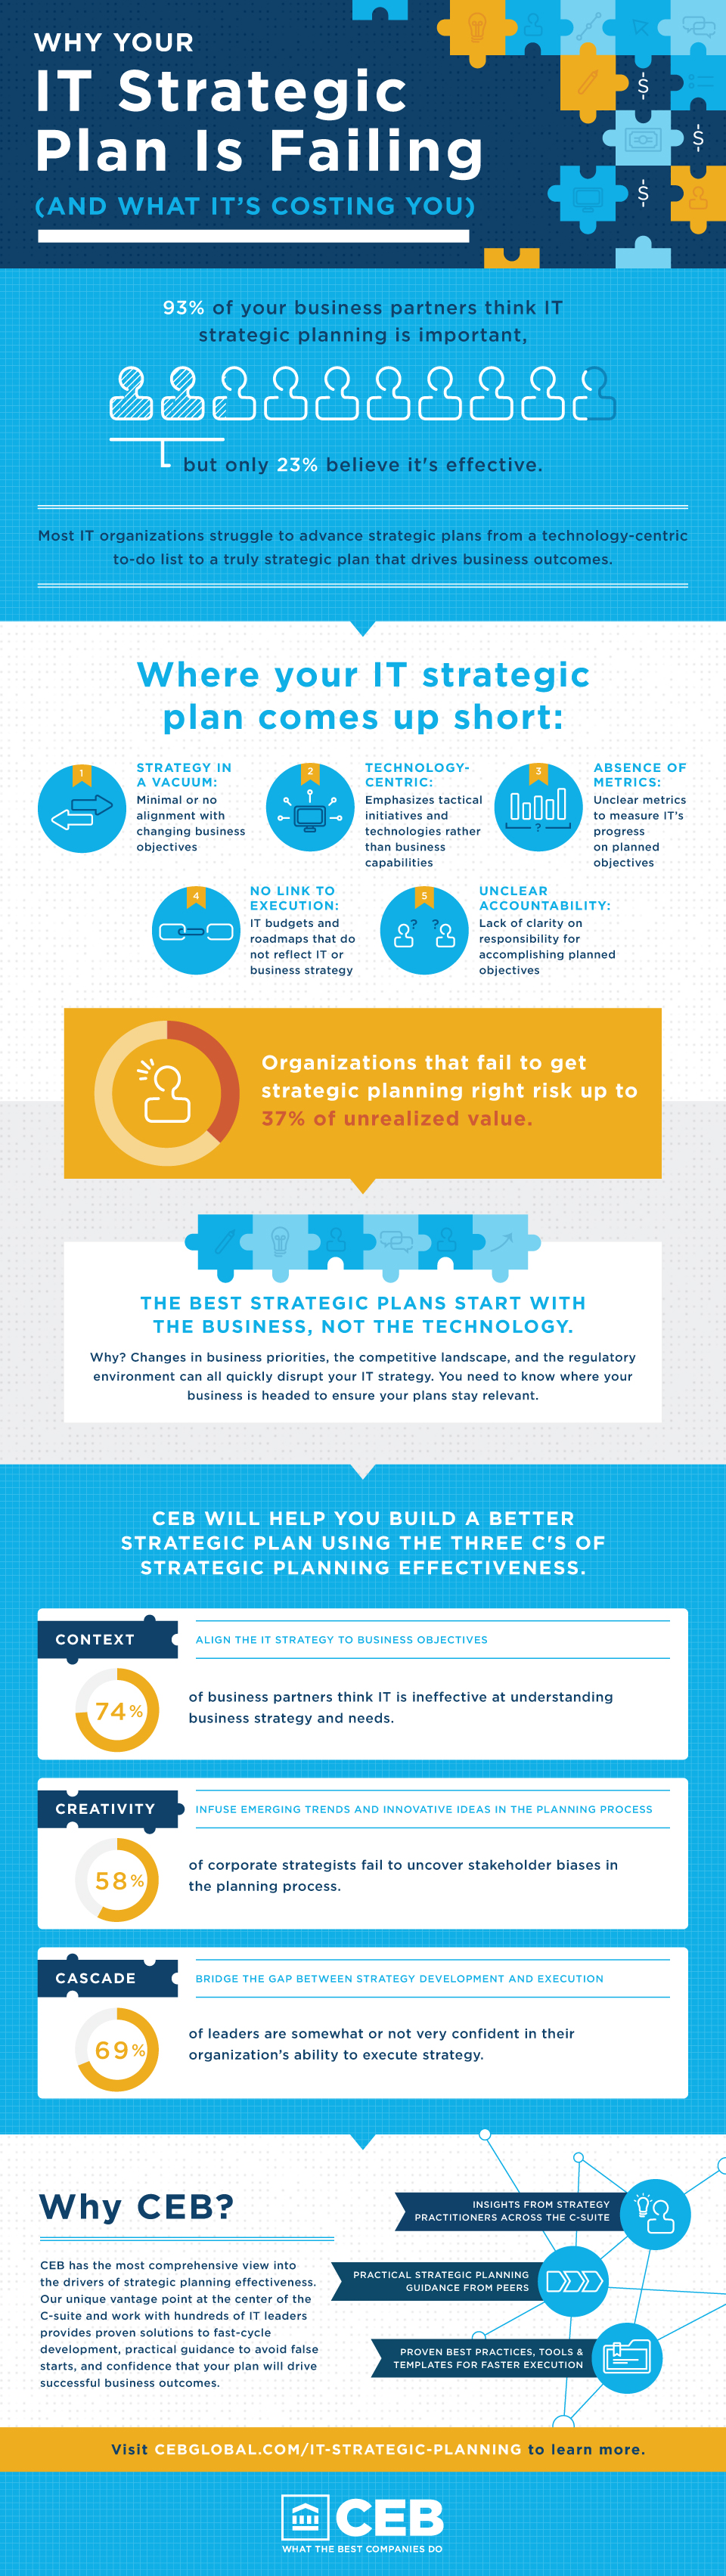 Why Your IT Strategic Plan Is Failing